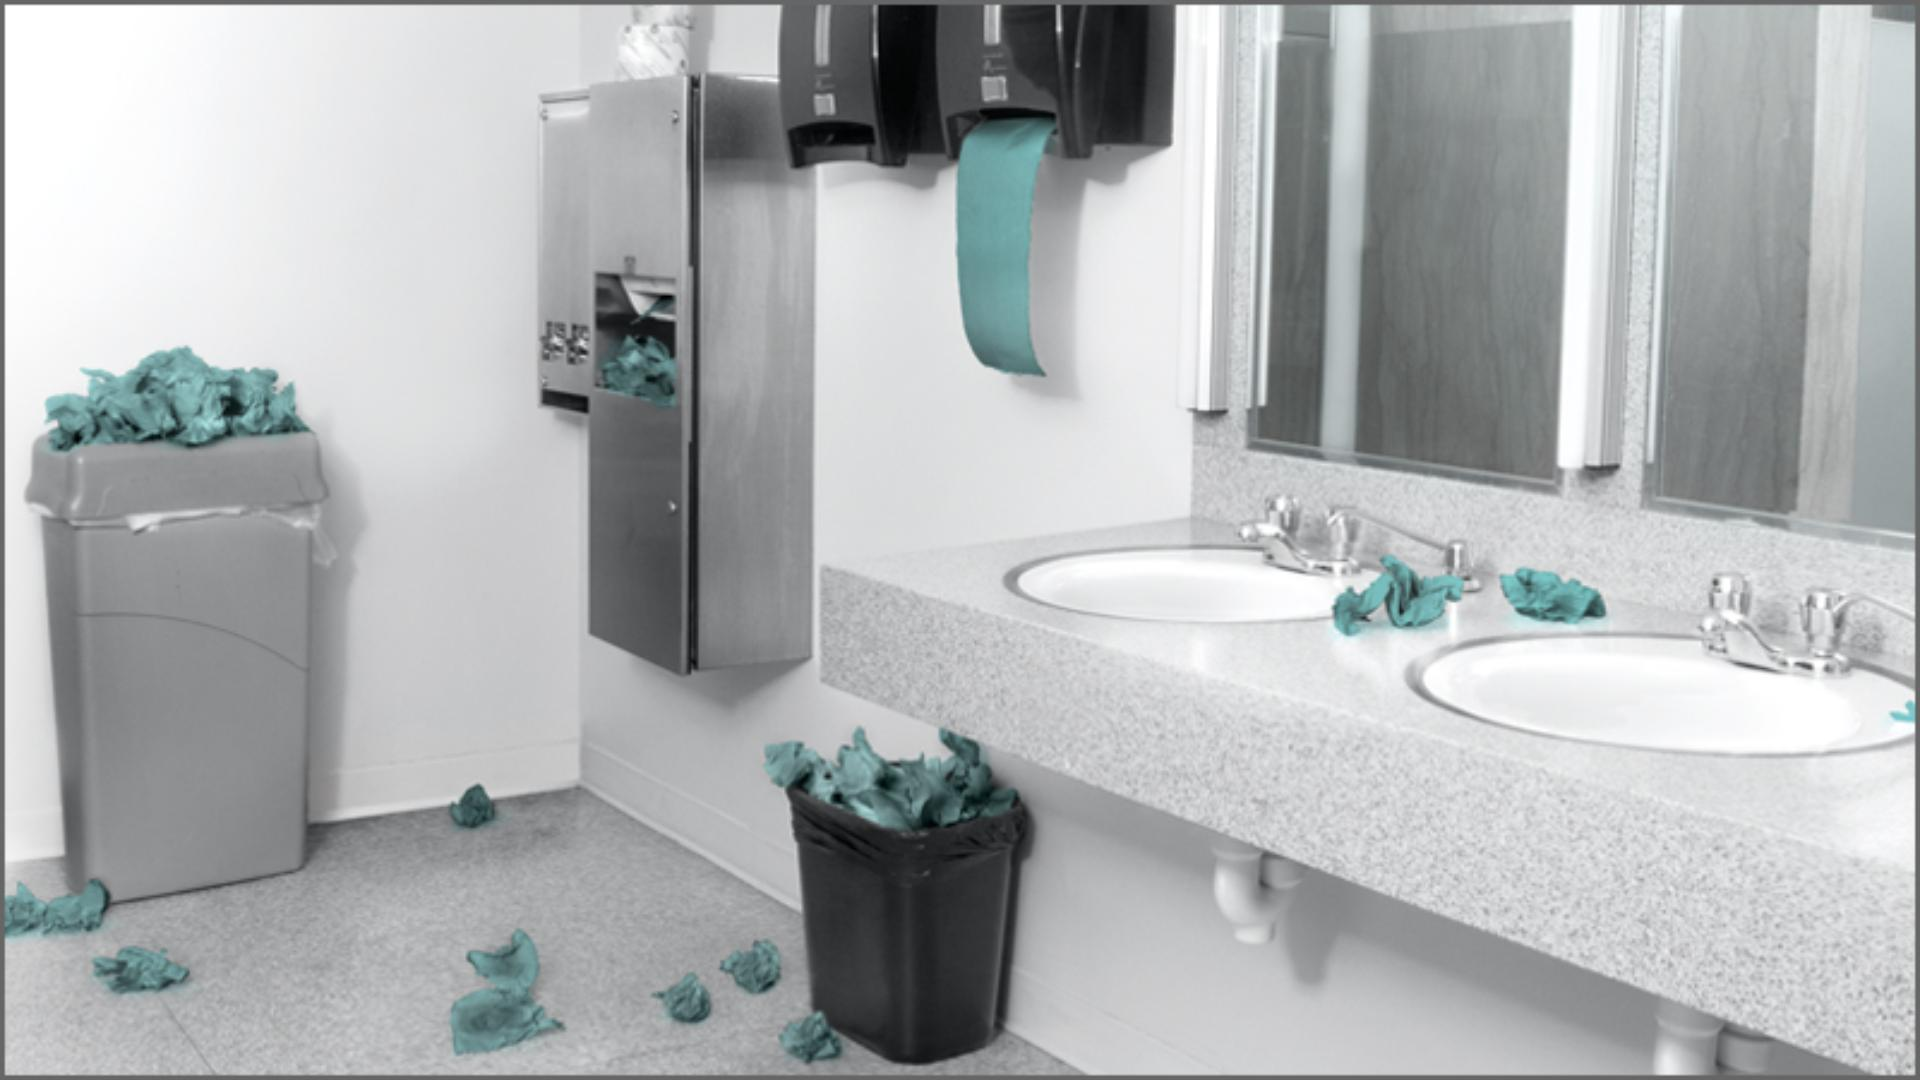 Image shows a washroom covered in litter